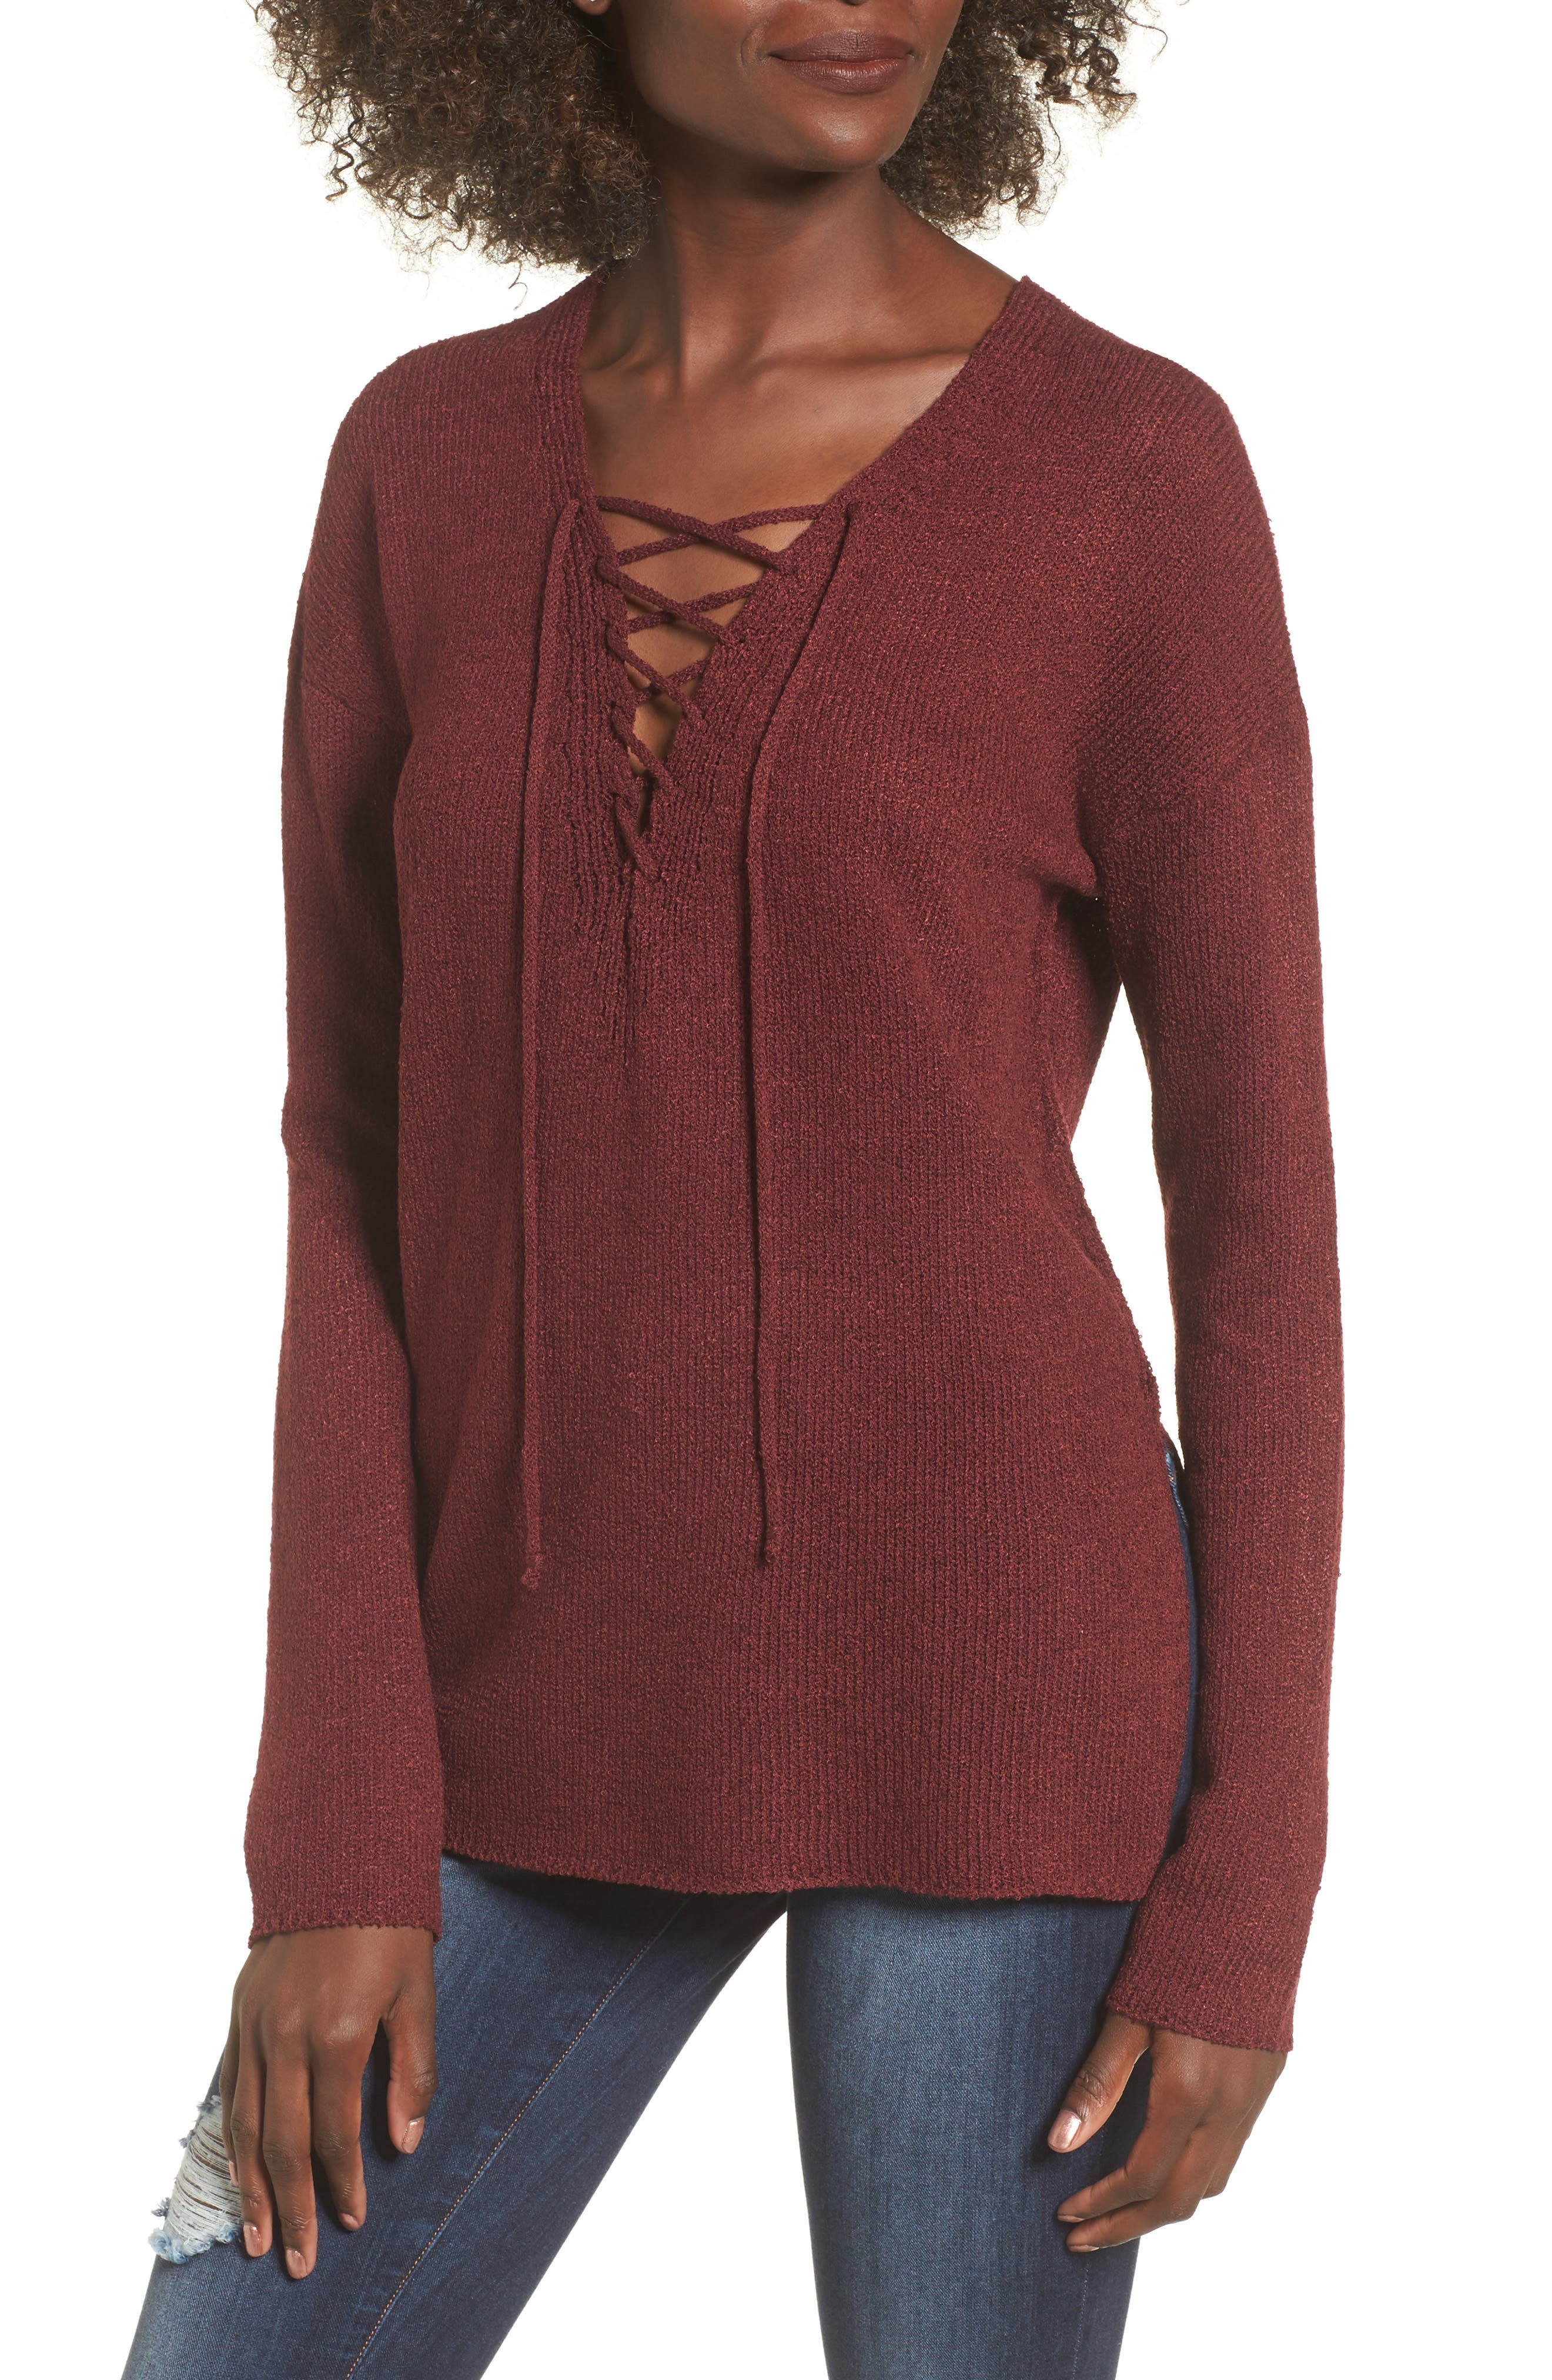 ASTR Lace-Up Sweater,                             Main thumbnail 1, color,                             930